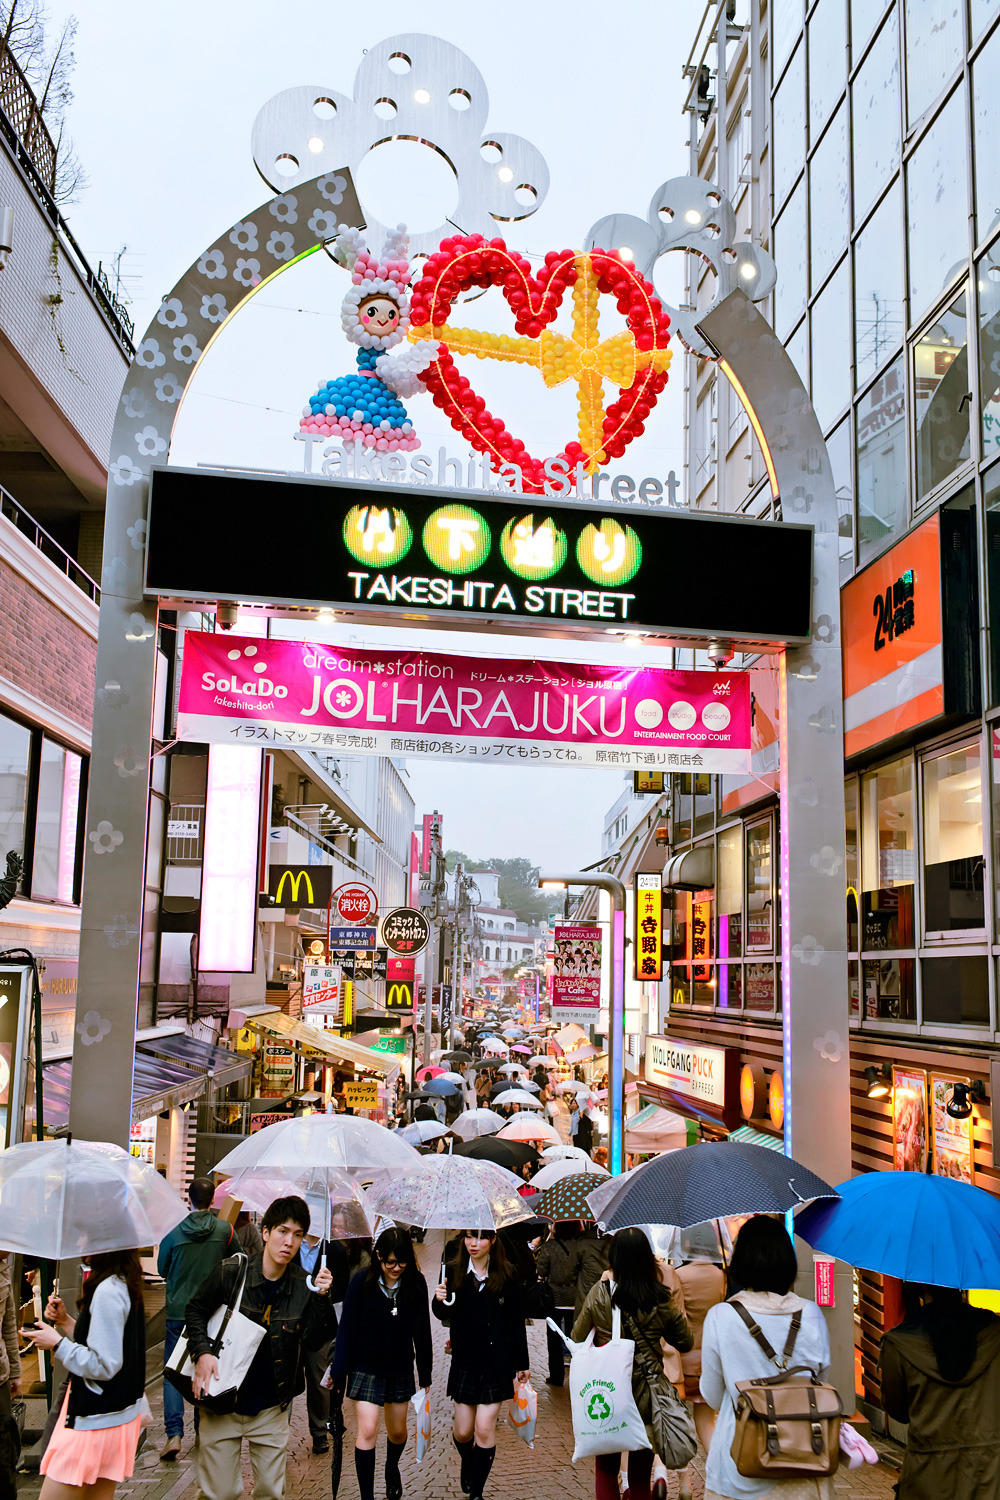 Light rain falling in Harajuku this evening.